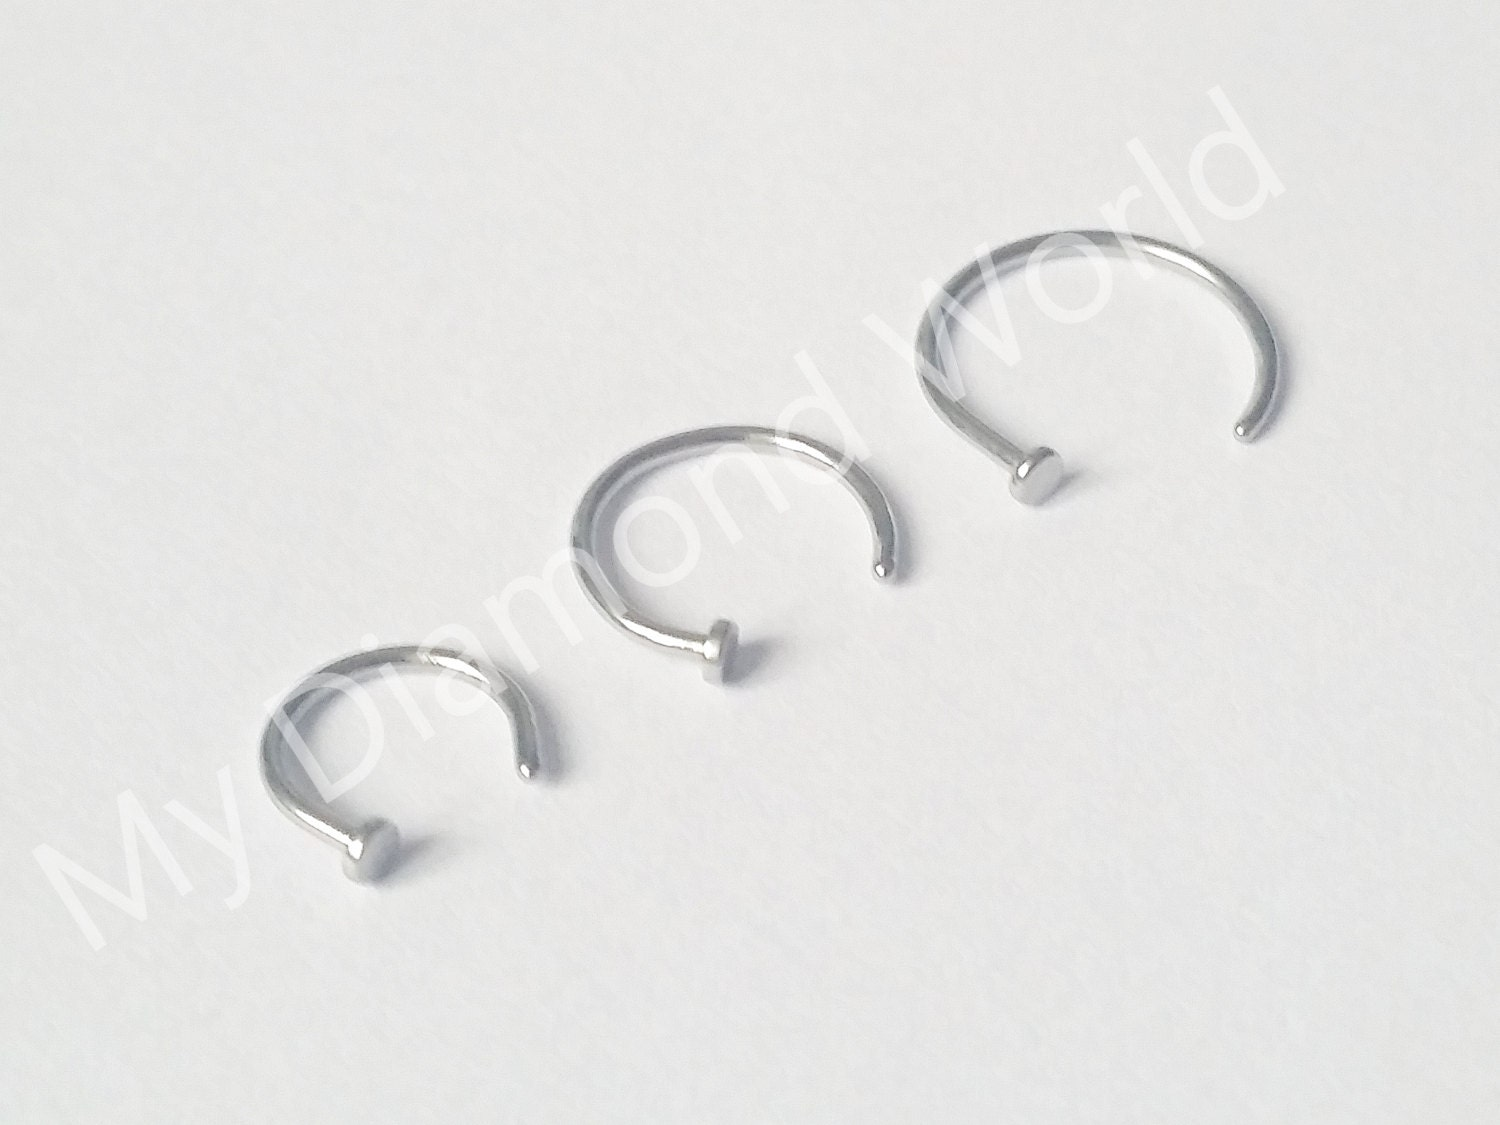 20g handmade nose ring hoop simple nose ring nose stud